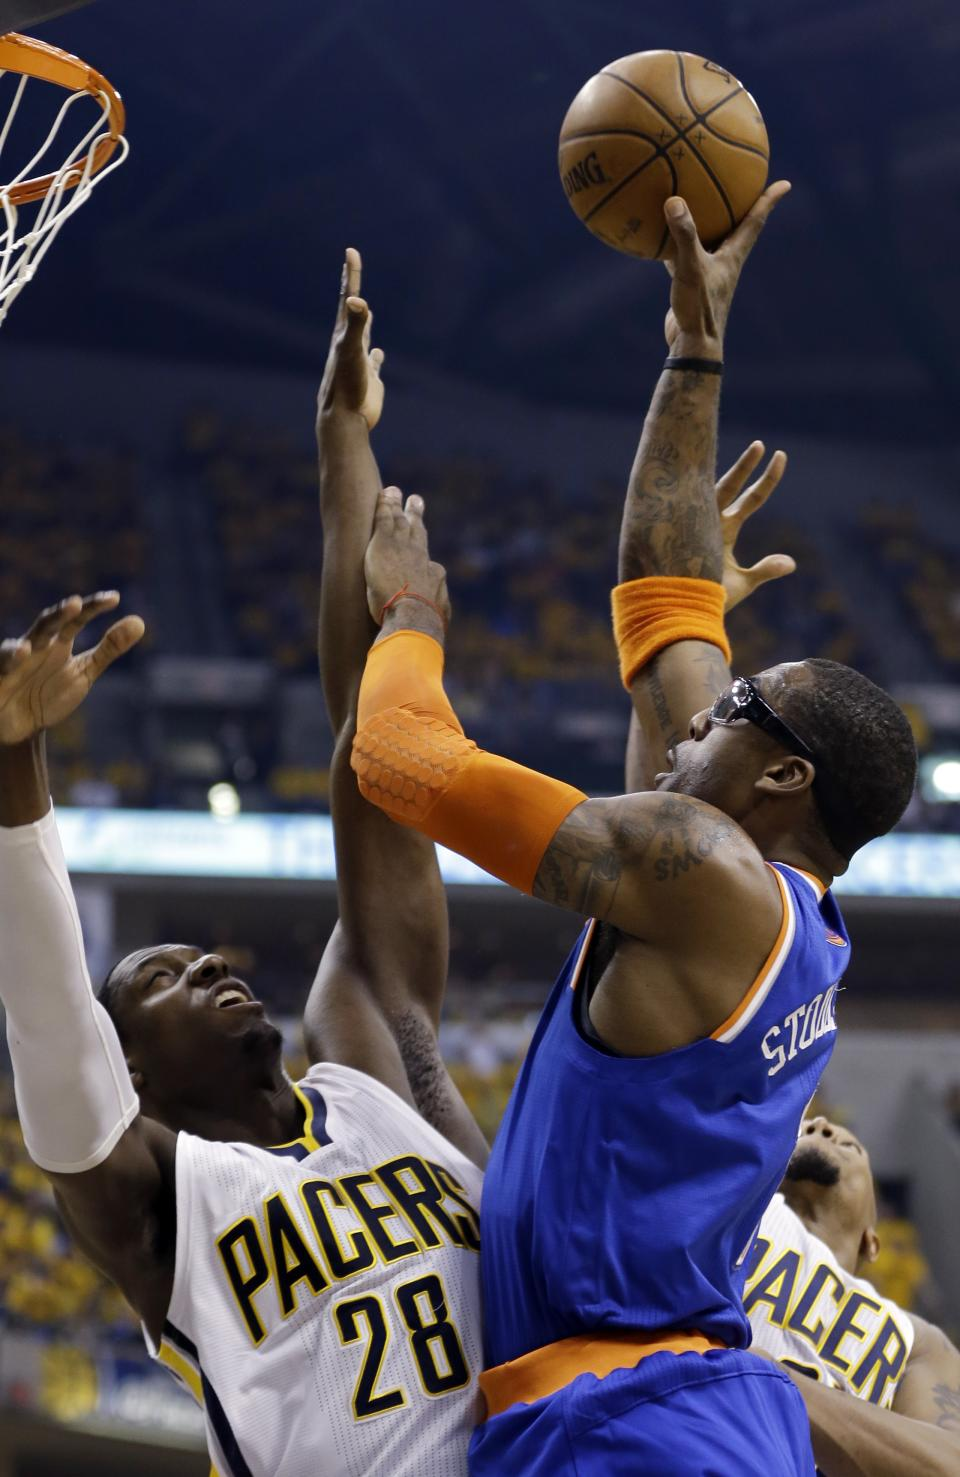 New York Knicks' Amare Stoudemire shoots over Indiana Pacers' Ian Mahinmi (28) during the first half of Game 6 of an Eastern Conference semifinal NBA basketball playoff series Saturday, May 18, 2013, in Indianapolis. (AP Photo/Darron Cummings)